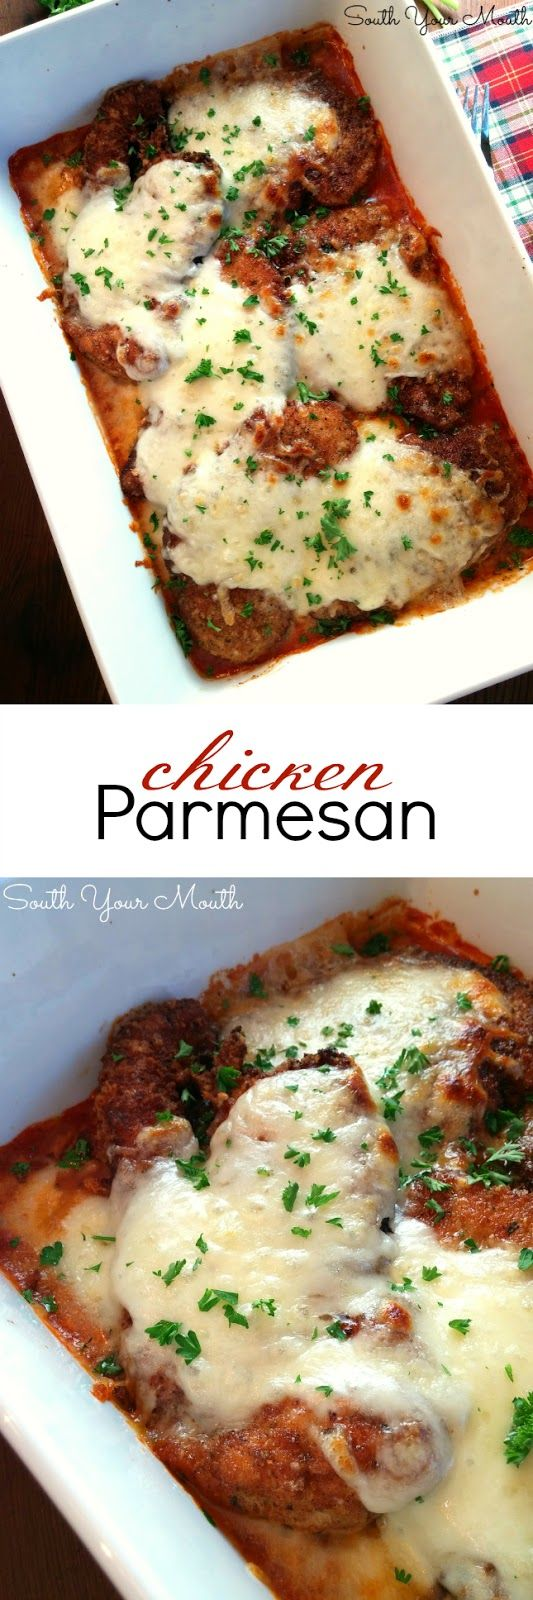 Chicken Parmesan! Crispy chicken cutlets breaded in parmesan and bread crumbs topped with gooey melted mozzarella with marinara sauce.